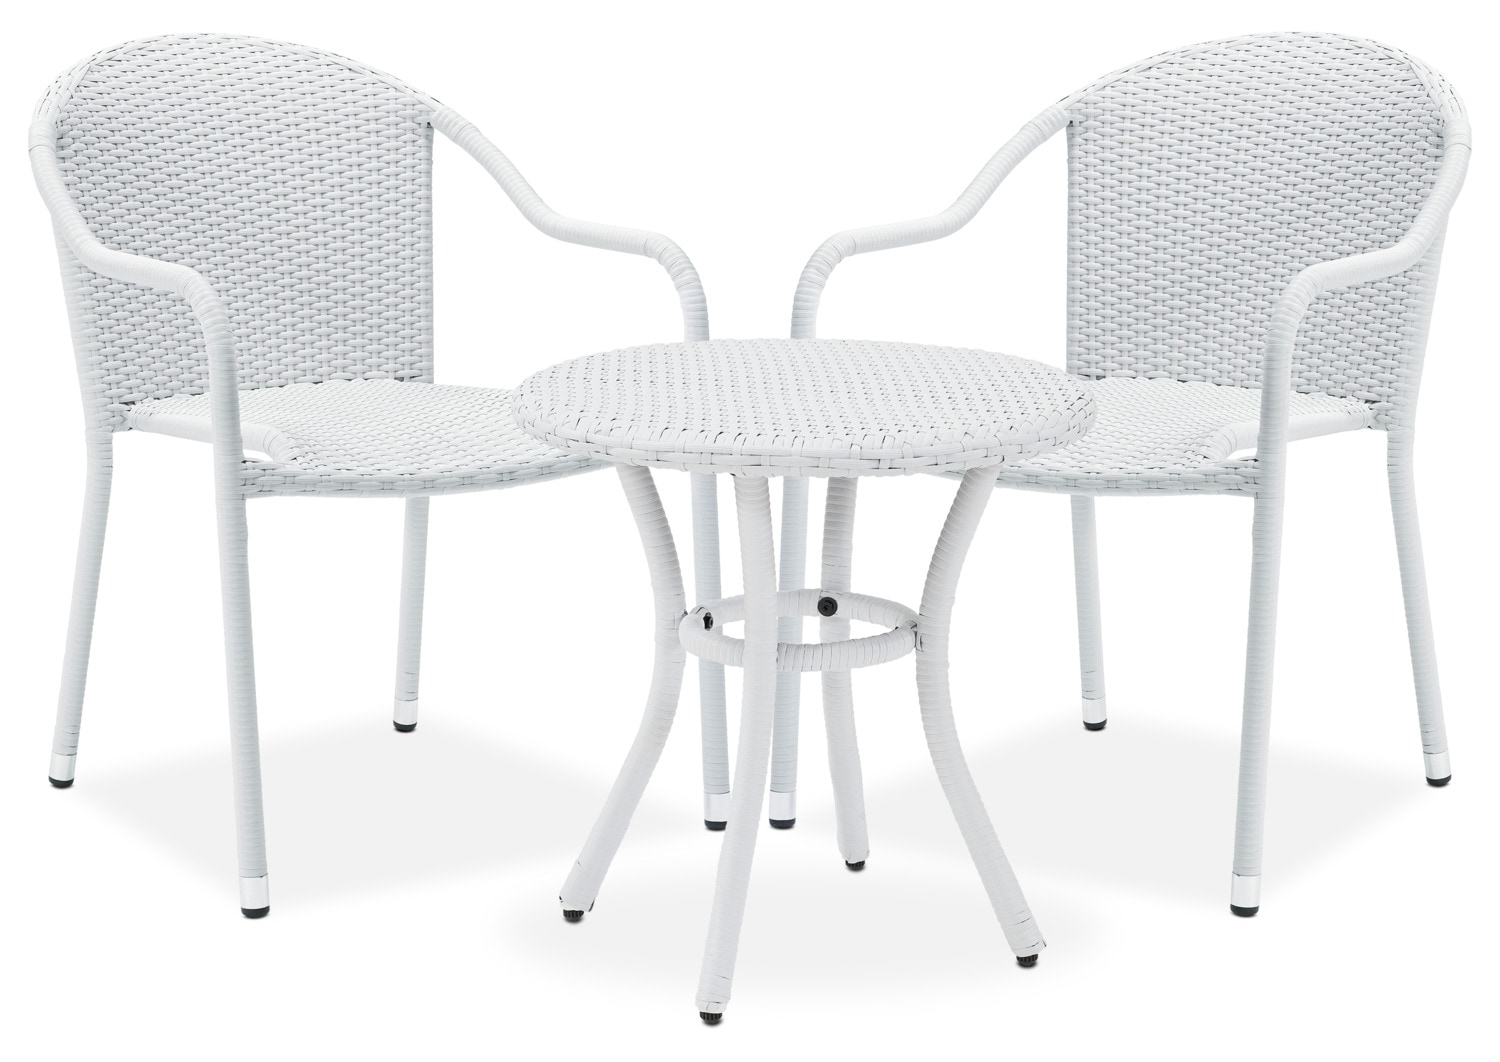 Outdoor Furniture Aldo Café Table And 2 Arm Chairs